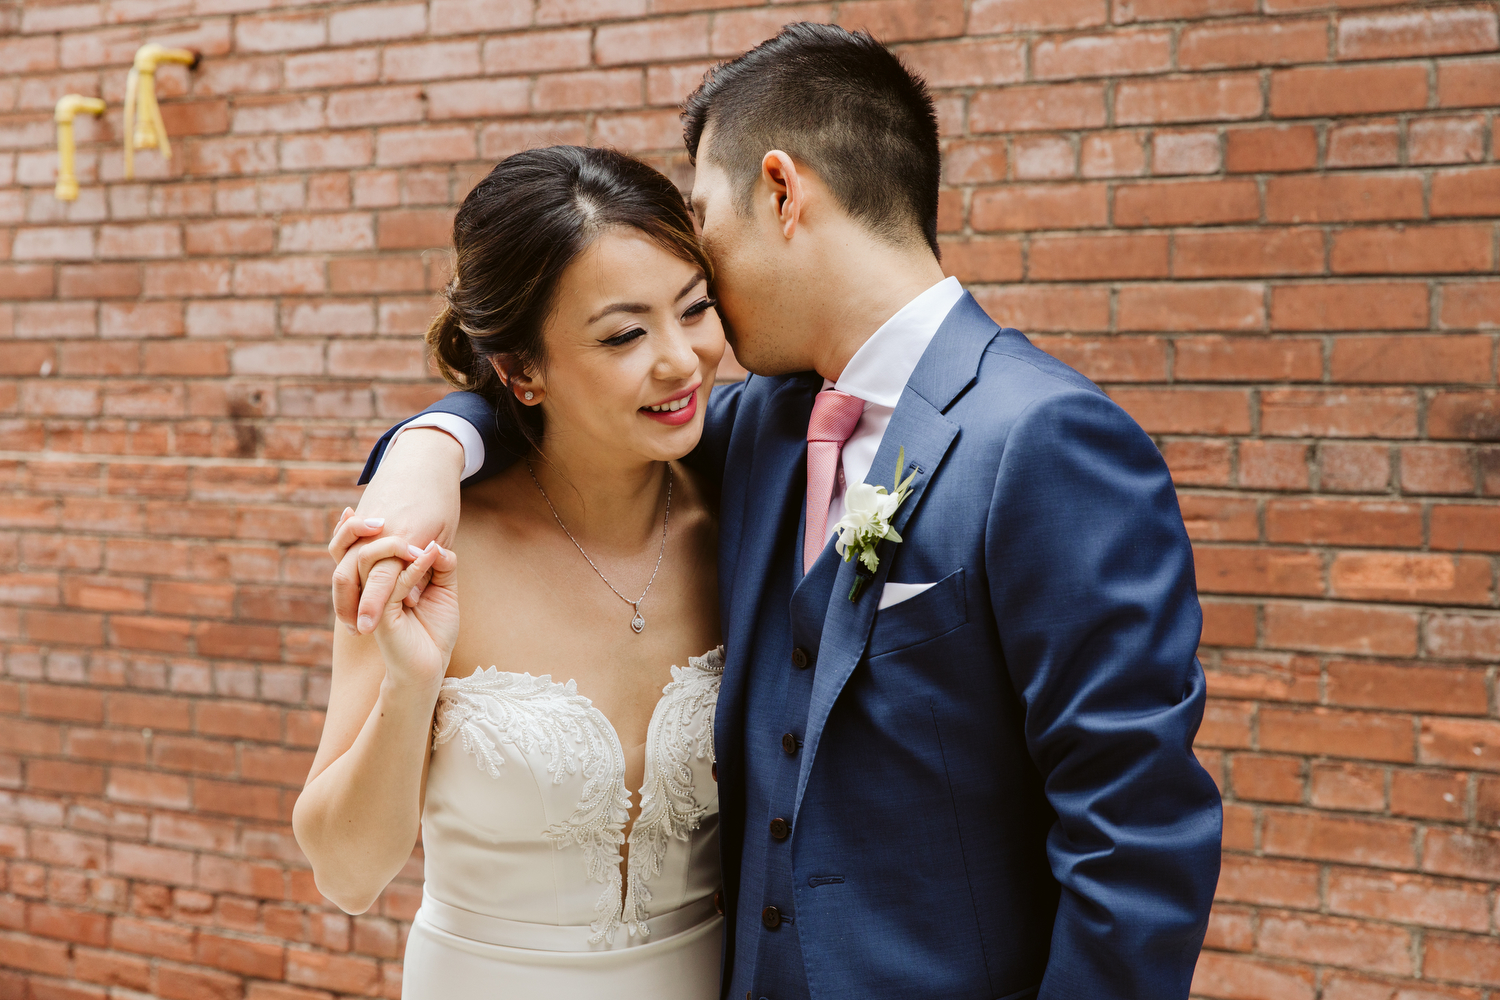 cool modern wedding photography by Magnolia Studios Toronto